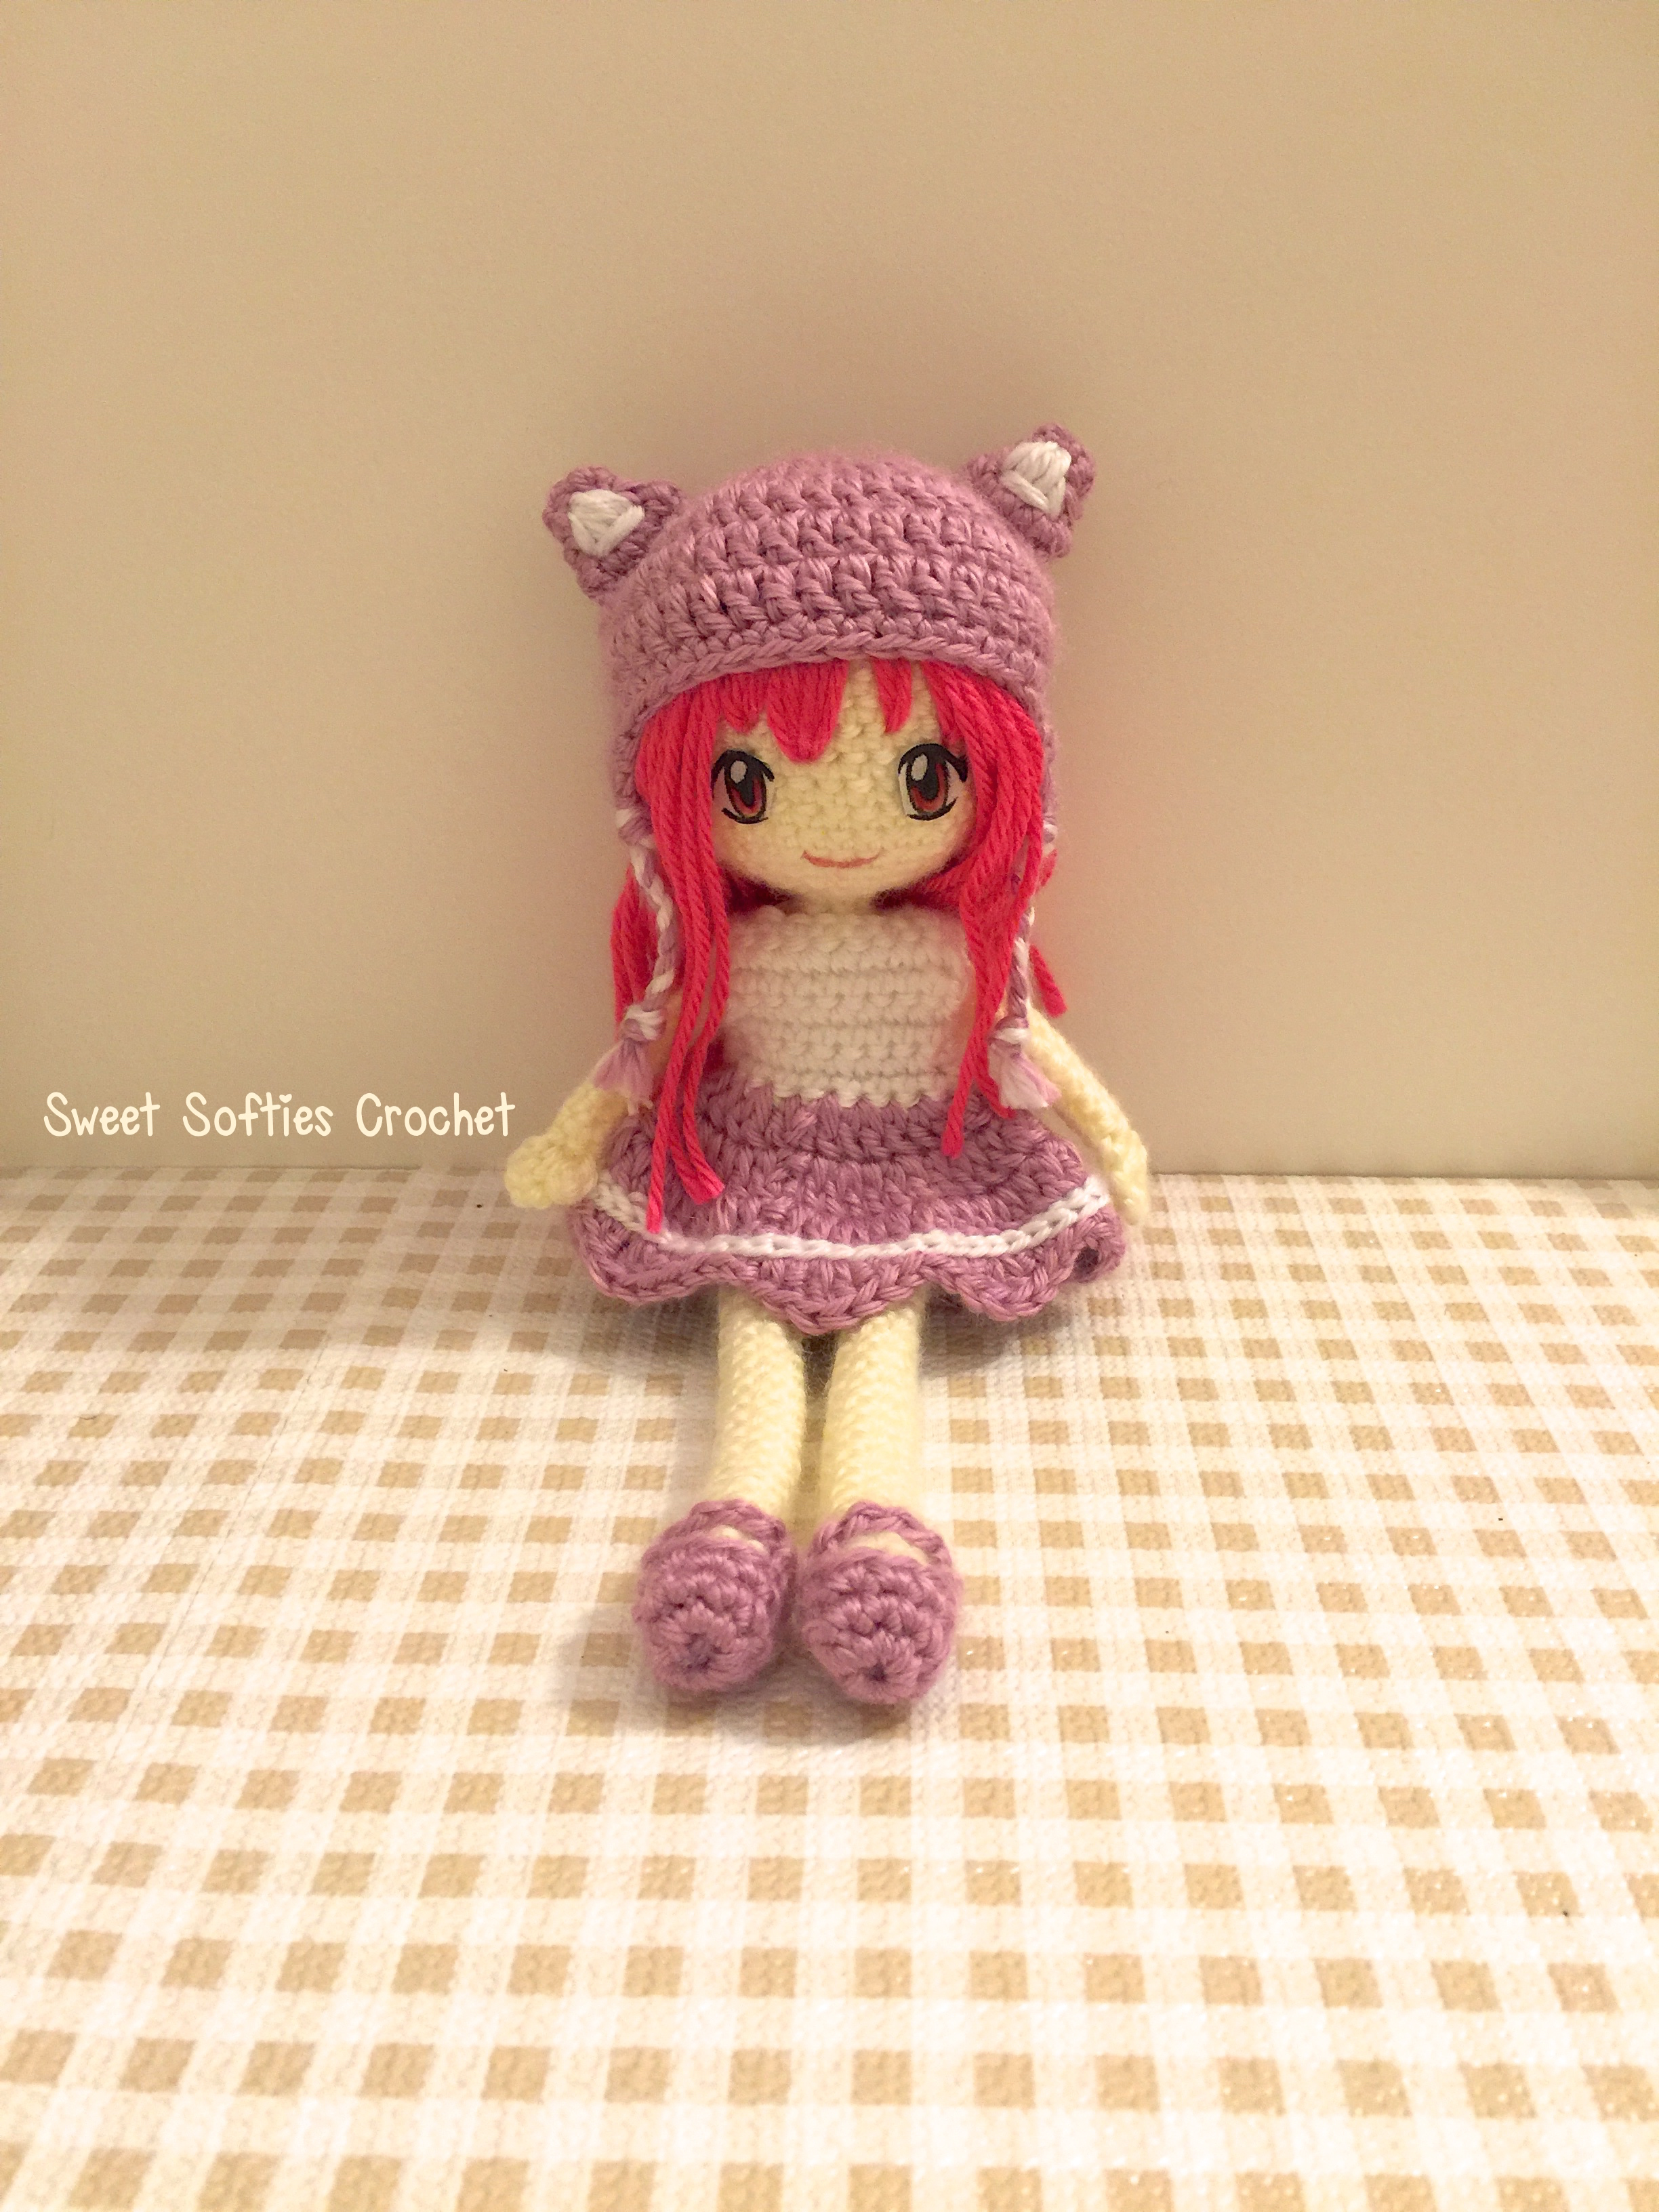 Curly Amigurumi Hair Tutorial | Crochet patterns, Crochet dolls ... | 3264x2448